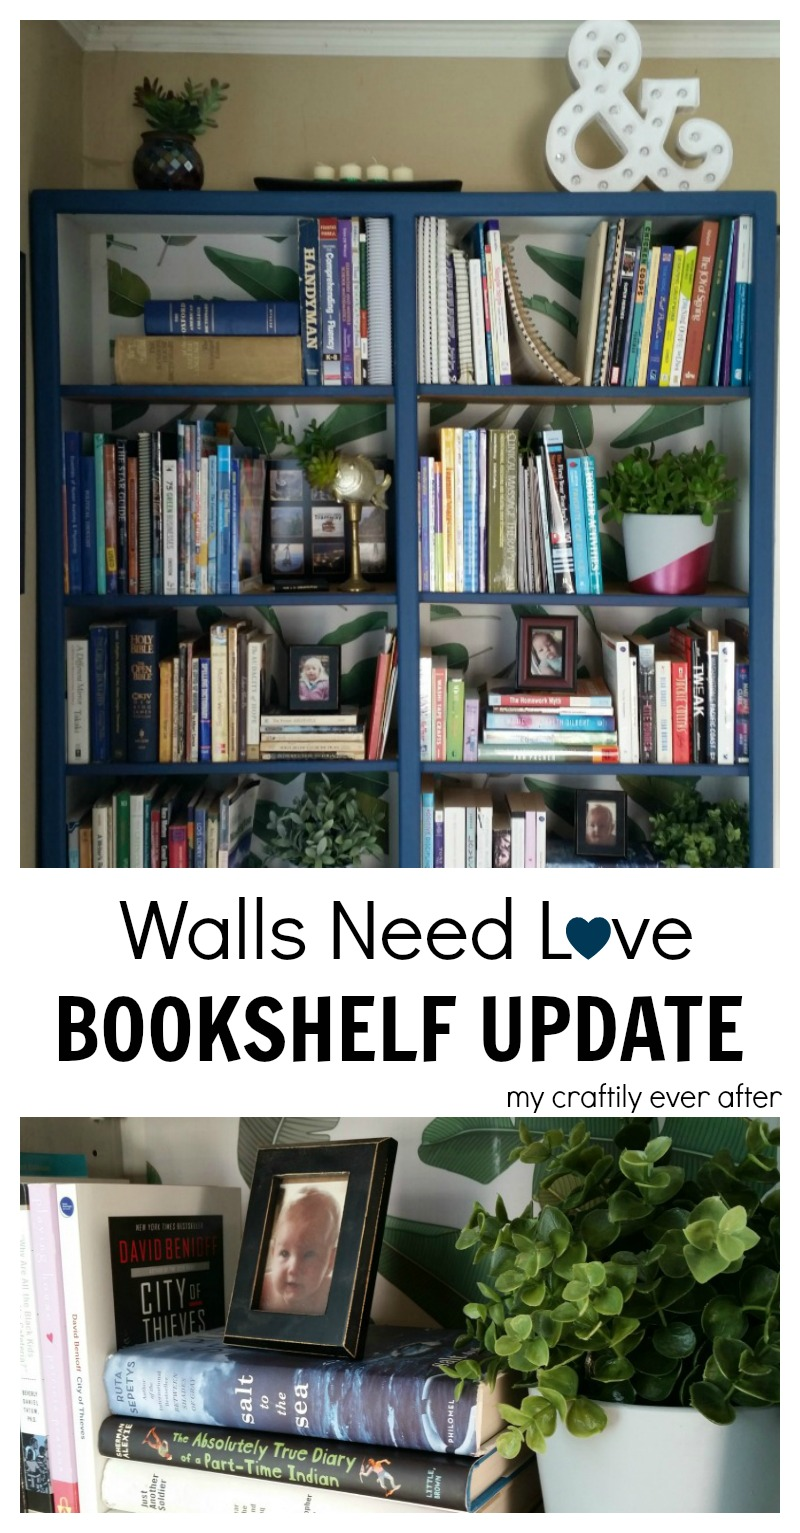 walls need love bookshelf update